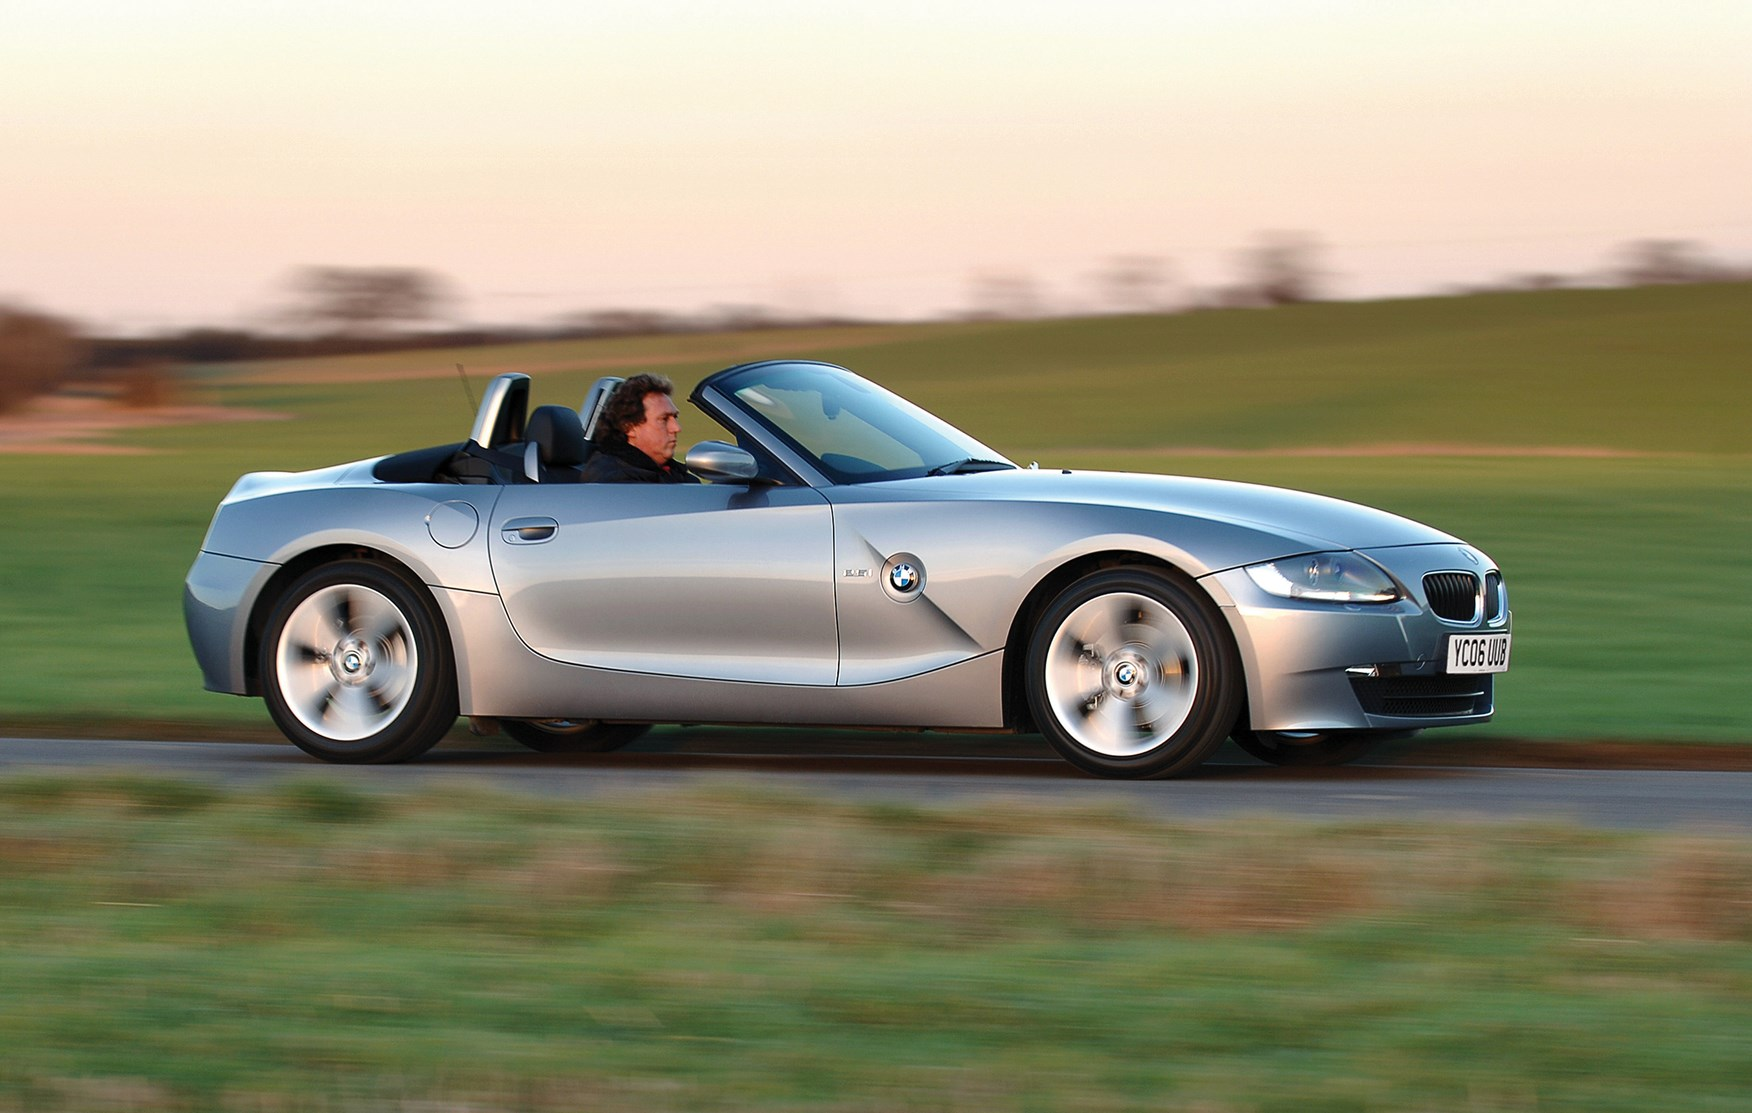 Bmw Z4 Faults Bmw Z4 Faults Bmw Z4 Smg Problems Bmw Z4